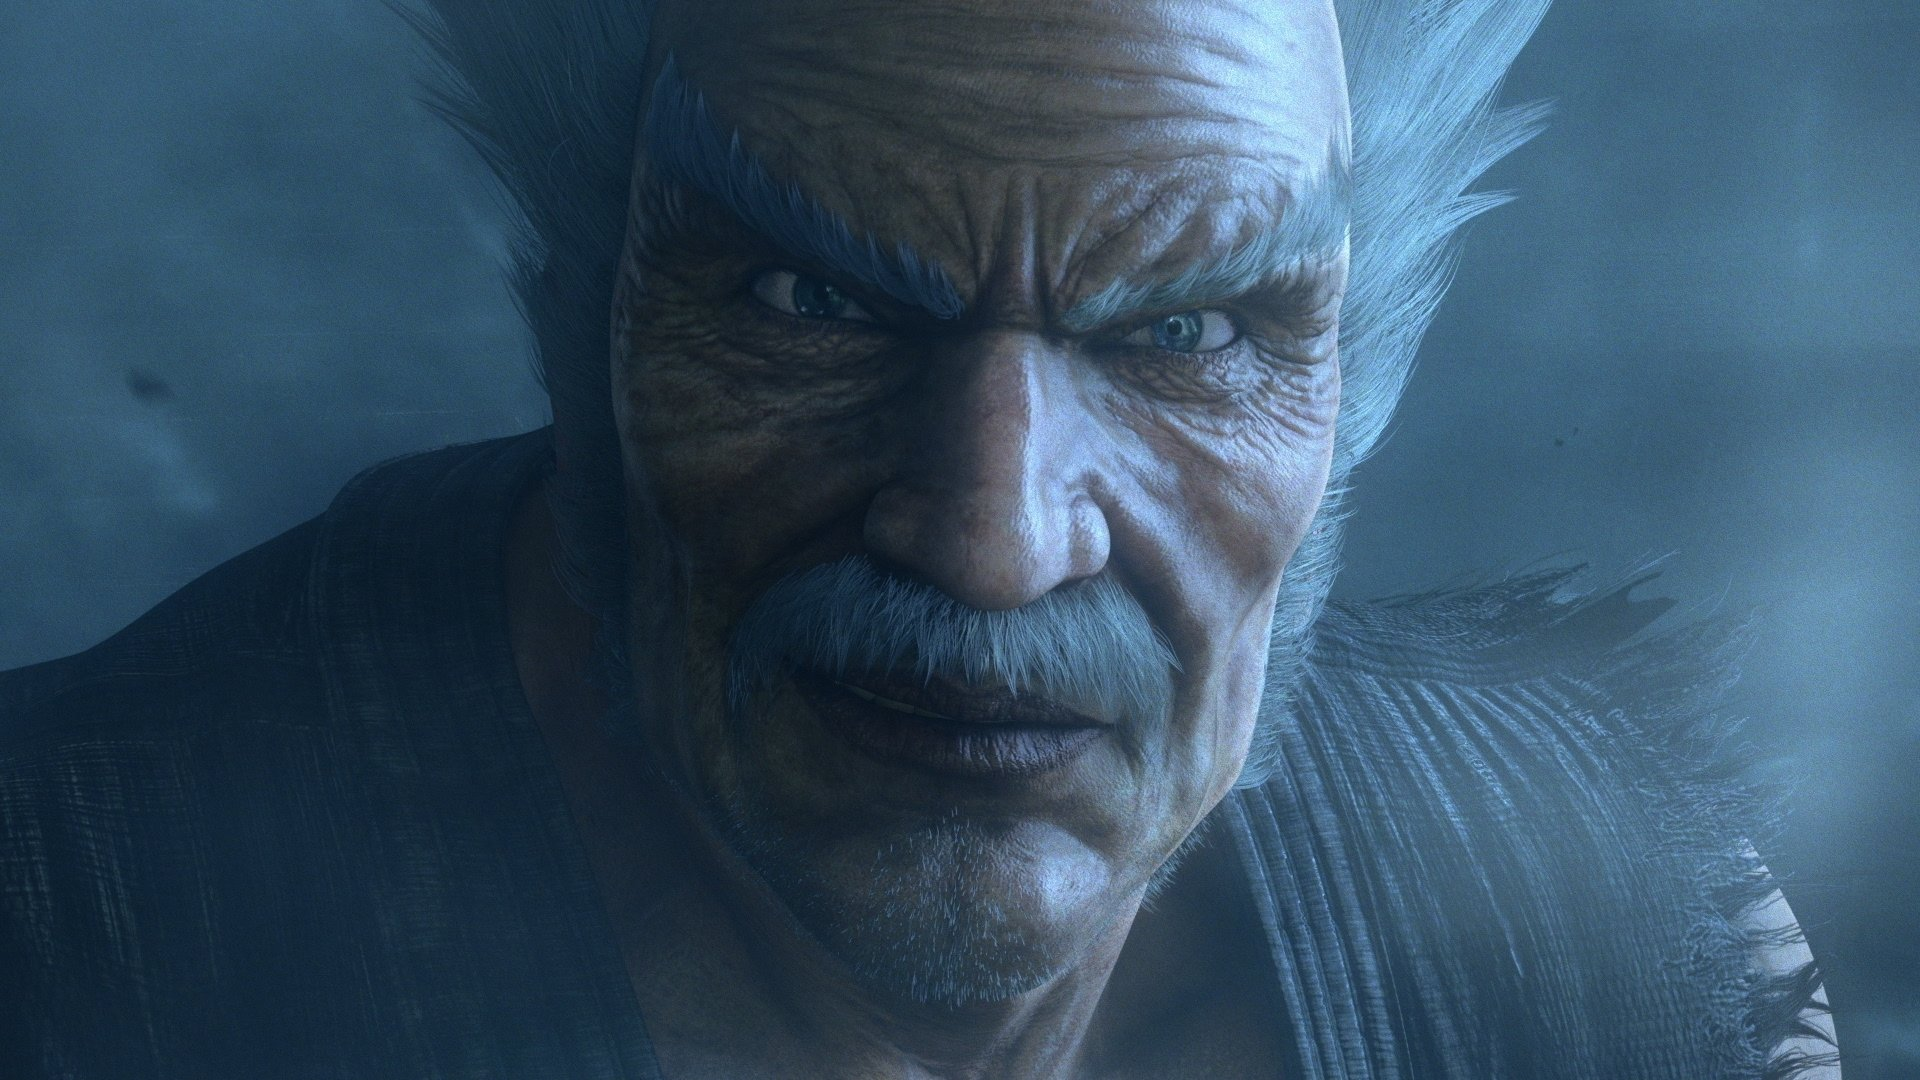 Video Game - Tekken 7  Heihachi Mishima Wallpaper